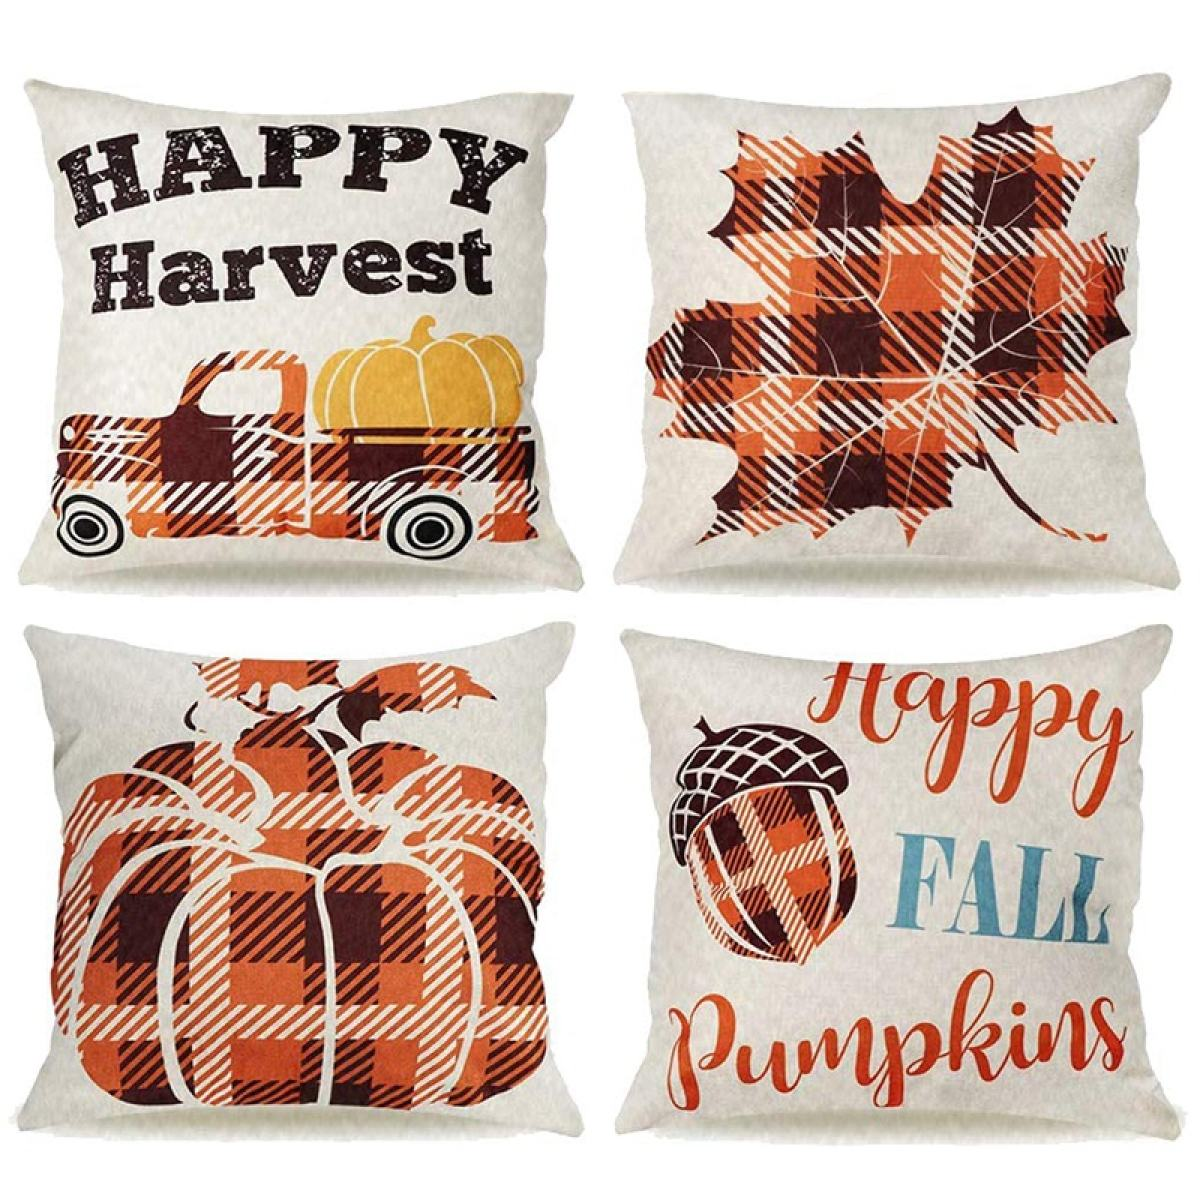 Fall Pillow Covers 18x18 Inch Set Of 4 Double Sided Truck Leaves Buffalo Check Throw Pillows For Fall Decor Farmhouse Lazada